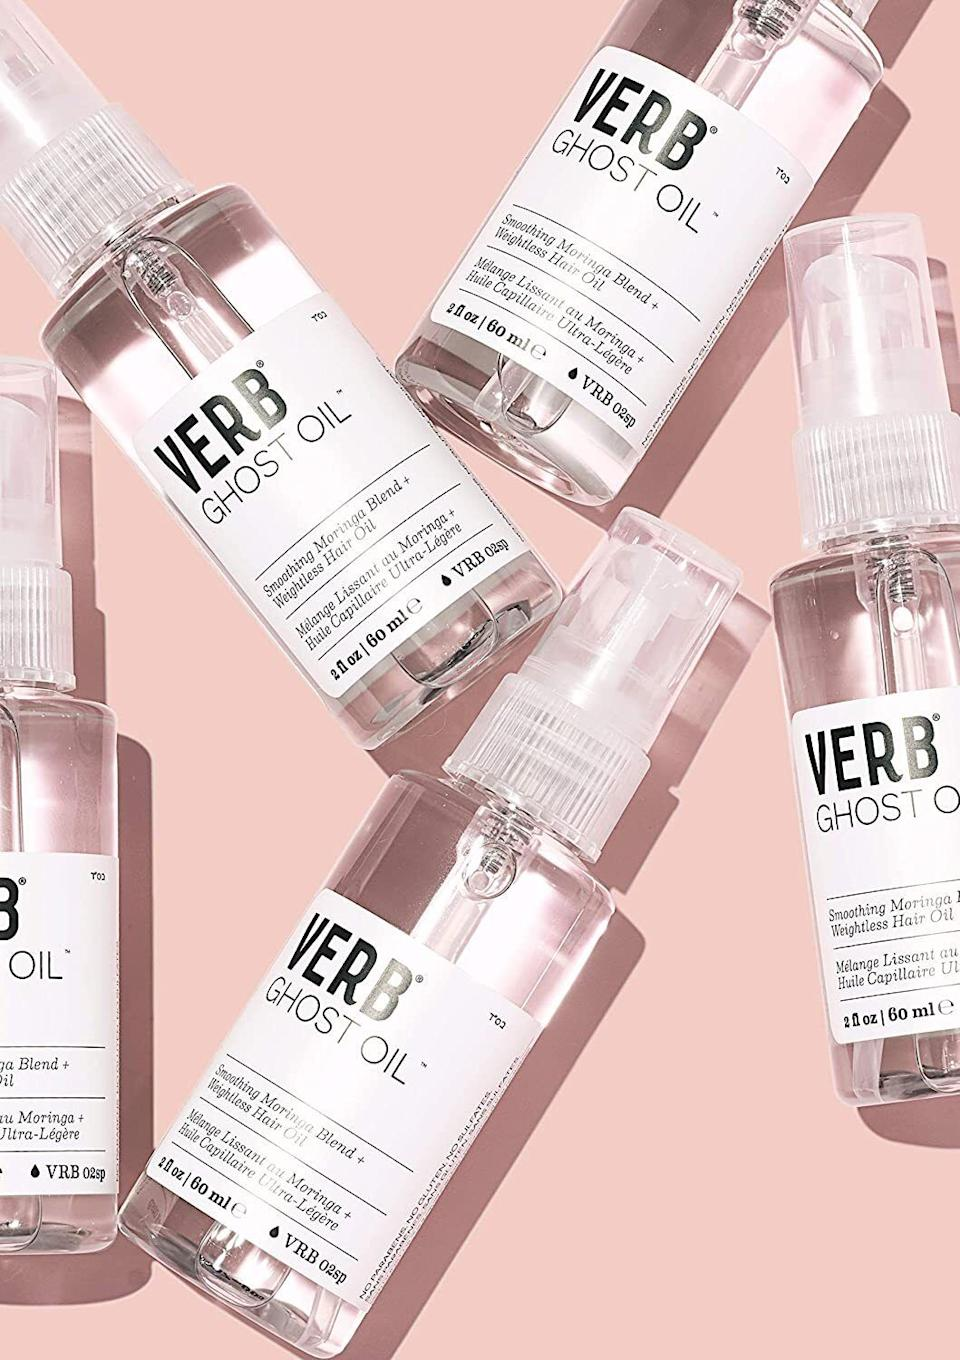 """Makesquick work of taming frizz and flyaways. This is THE BEST hair oil if you have coarse, thick hair. Reviewers with hair textures up to 4C rave about it!<br /><br /><strong>Promising review:</strong>""""I have 4c hair and this is AMAZING. At first I thought this would do nothing for my hair since Verb caters to looser hair textures but this product is lightweight and a little goes a LONGGGG way. I've used several pumps of this and the bottle still looks like I've barely used any of it! Amazing product for detangling, softening, and adding moisture to your hair."""" —<a href=""""https://www.amazon.com/dp/B00C3HQB9C?tag=huffpost-bfsyndication-20&ascsubtag=5876069%2C1%2C48%2Cd%2C0%2C0%2C0%2C962%3A1%3B901%3A2%3B900%3A2%3B974%3A3%3B975%3A2%3B982%3A2%2C16398628%2C0"""" target=""""_blank"""" rel=""""noopener noreferrer"""">Brit</a><br /><br /><strong>Get it from Amazon for <a href=""""https://www.amazon.com/dp/B00C3HQB9C?tag=huffpost-bfsyndication-20&ascsubtag=5876069%2C1%2C48%2Cd%2C0%2C0%2C0%2C962%3A1%3B901%3A2%3B900%3A2%3B974%3A3%3B975%3A2%3B982%3A2%2C16398628%2C0"""" target=""""_blank"""" rel=""""noopener noreferrer"""">$18</a>.</strong>"""